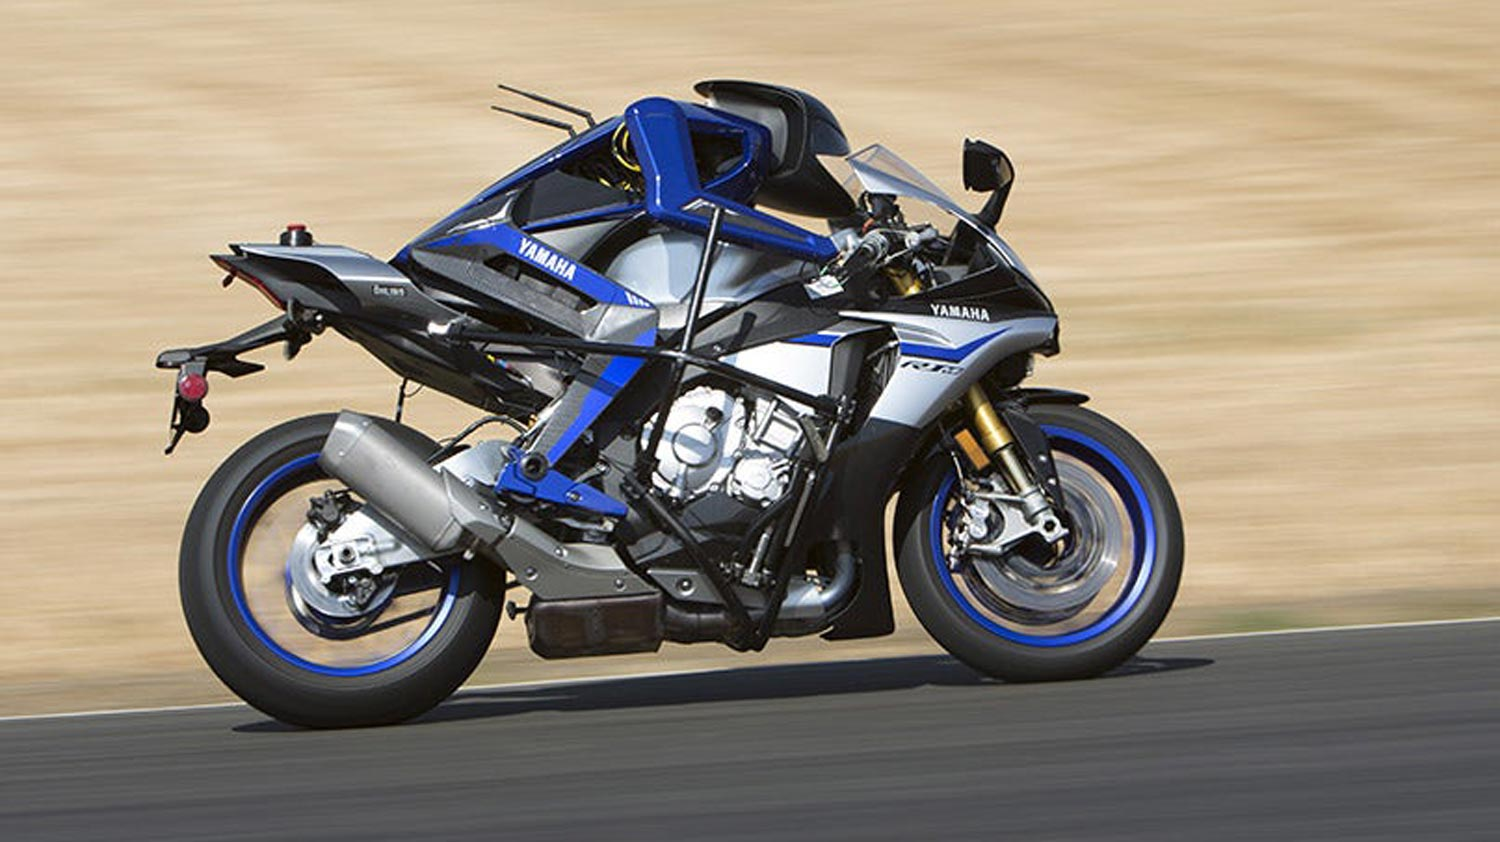 Yamaha's latest self-riding bike Motorbot challenges Valentino Rossi on track